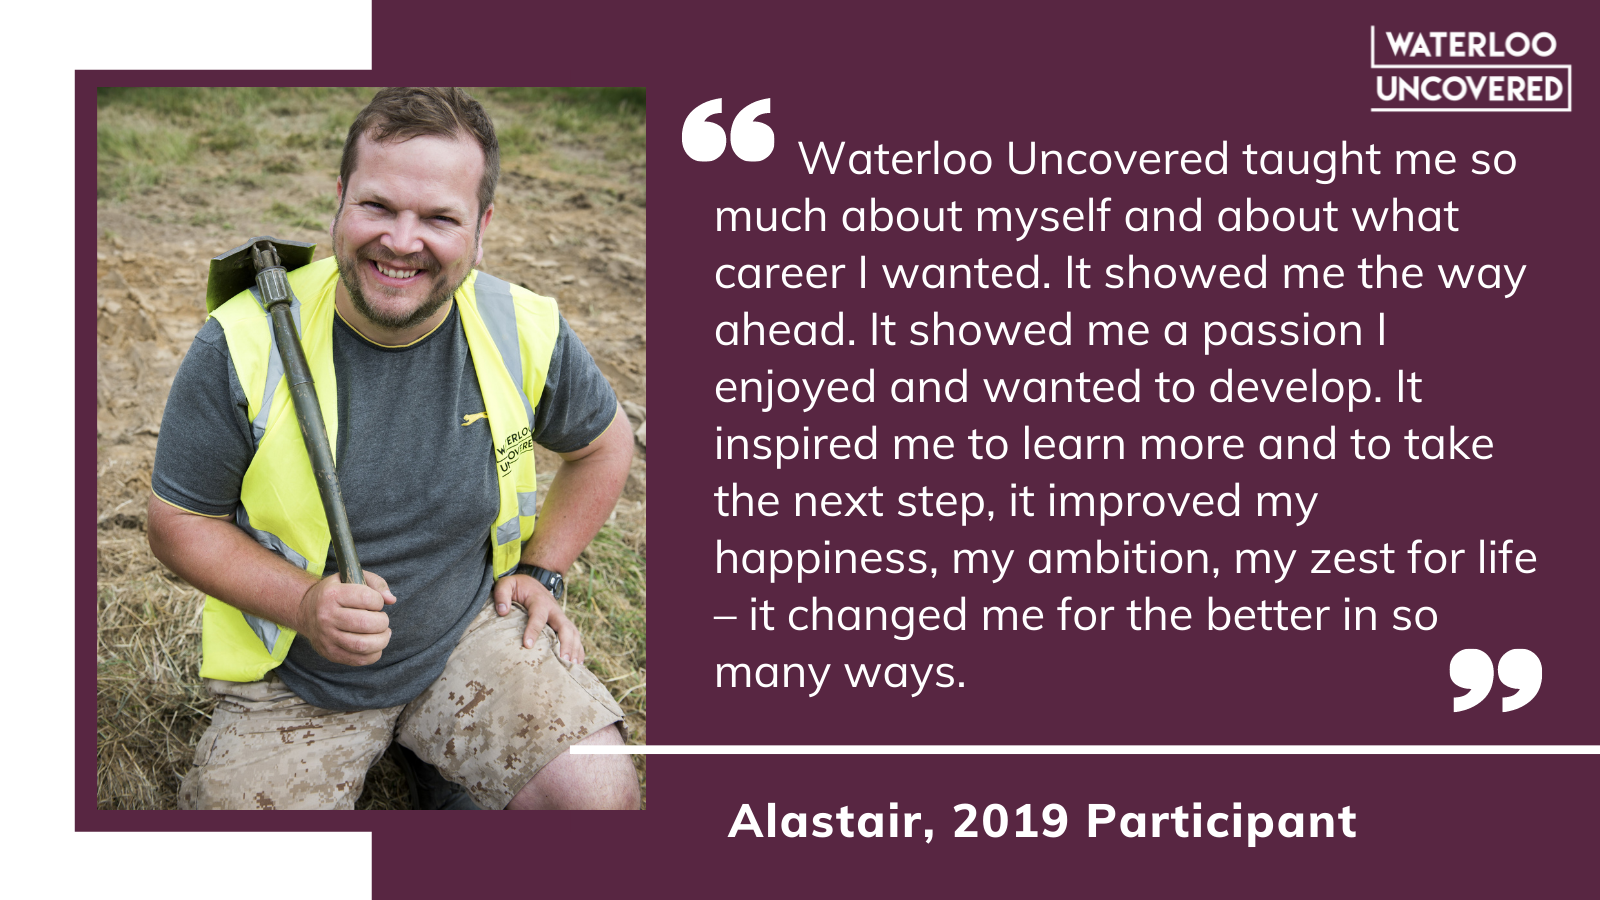 Waterloo Uncovered taught me so much about myself and about what career I wanted. It showed me the way ahead. It showed me a passion I enjoyed and wanted to develop. It inspired me to learn more and to take the next step, it improved my happiness, my ambition, my zest for life - it changed me for the better in so many ways. Quote from Alastair, 2019 participant.